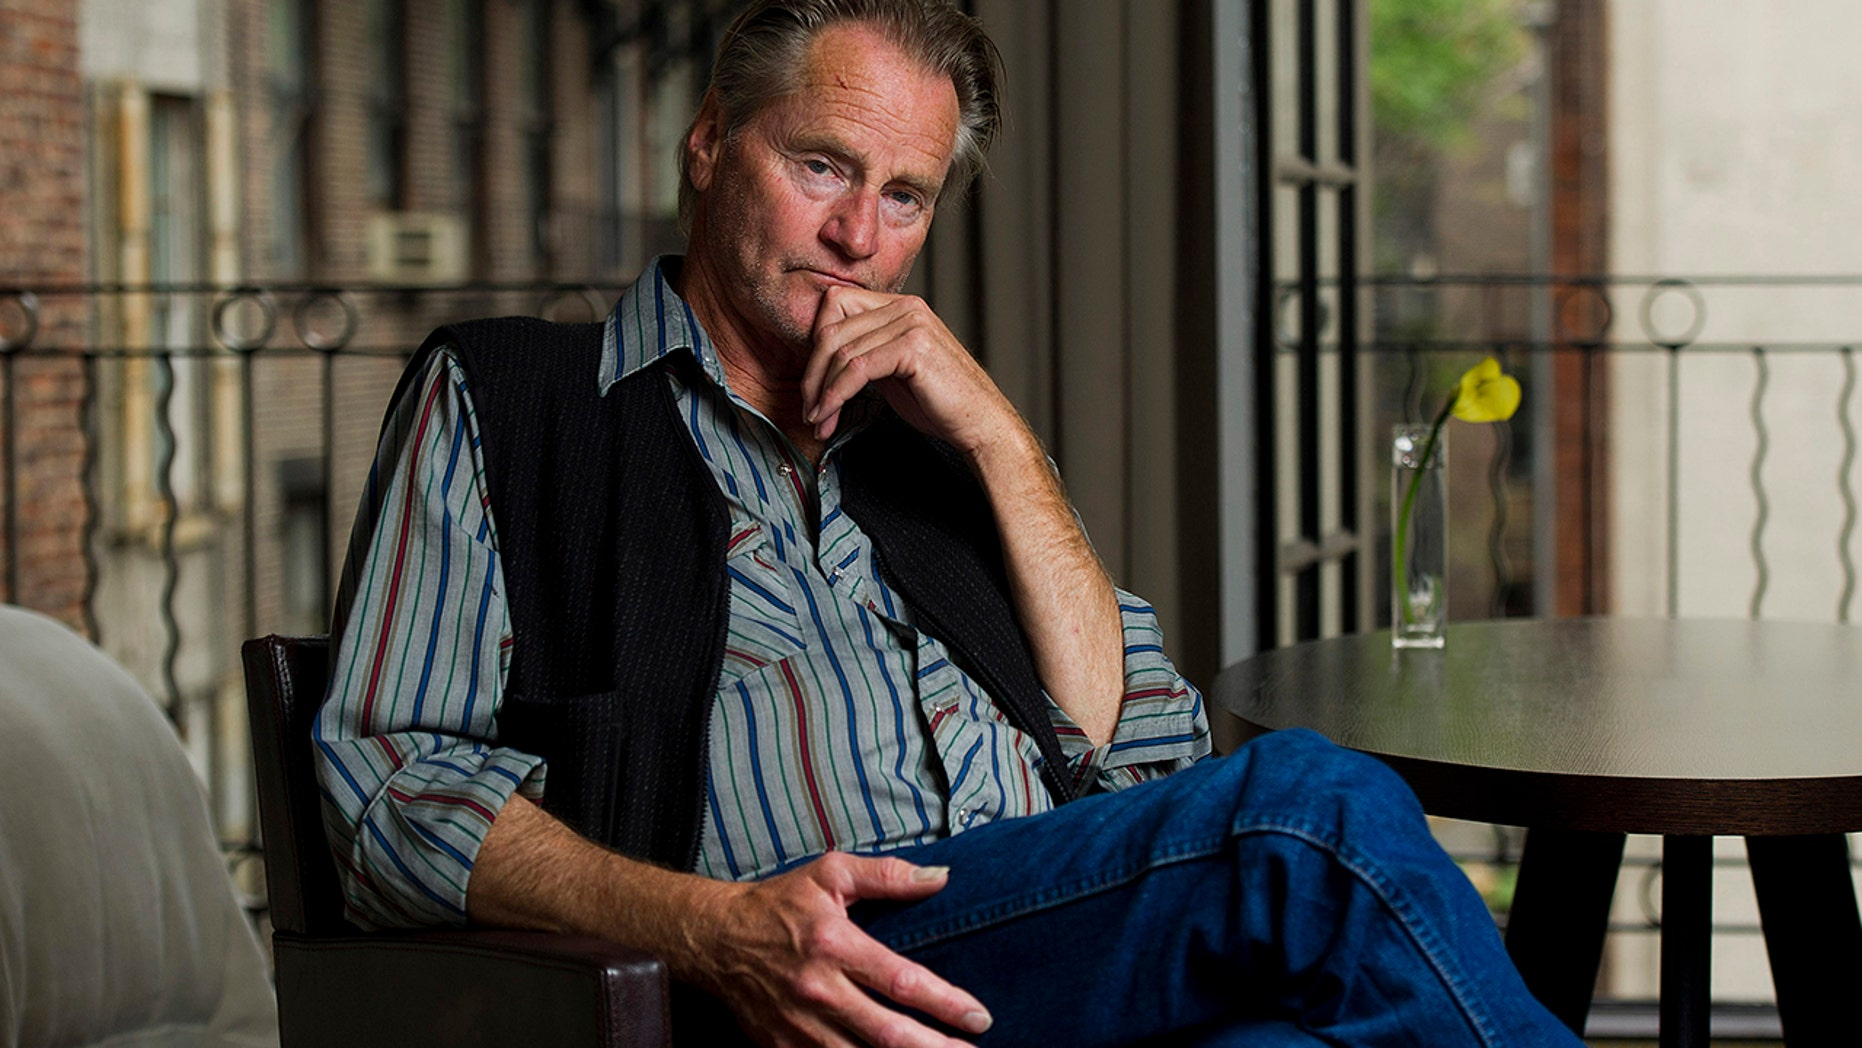 Actor Sam Shepard died of complications from ALS on Thursday. He was 73 years old.